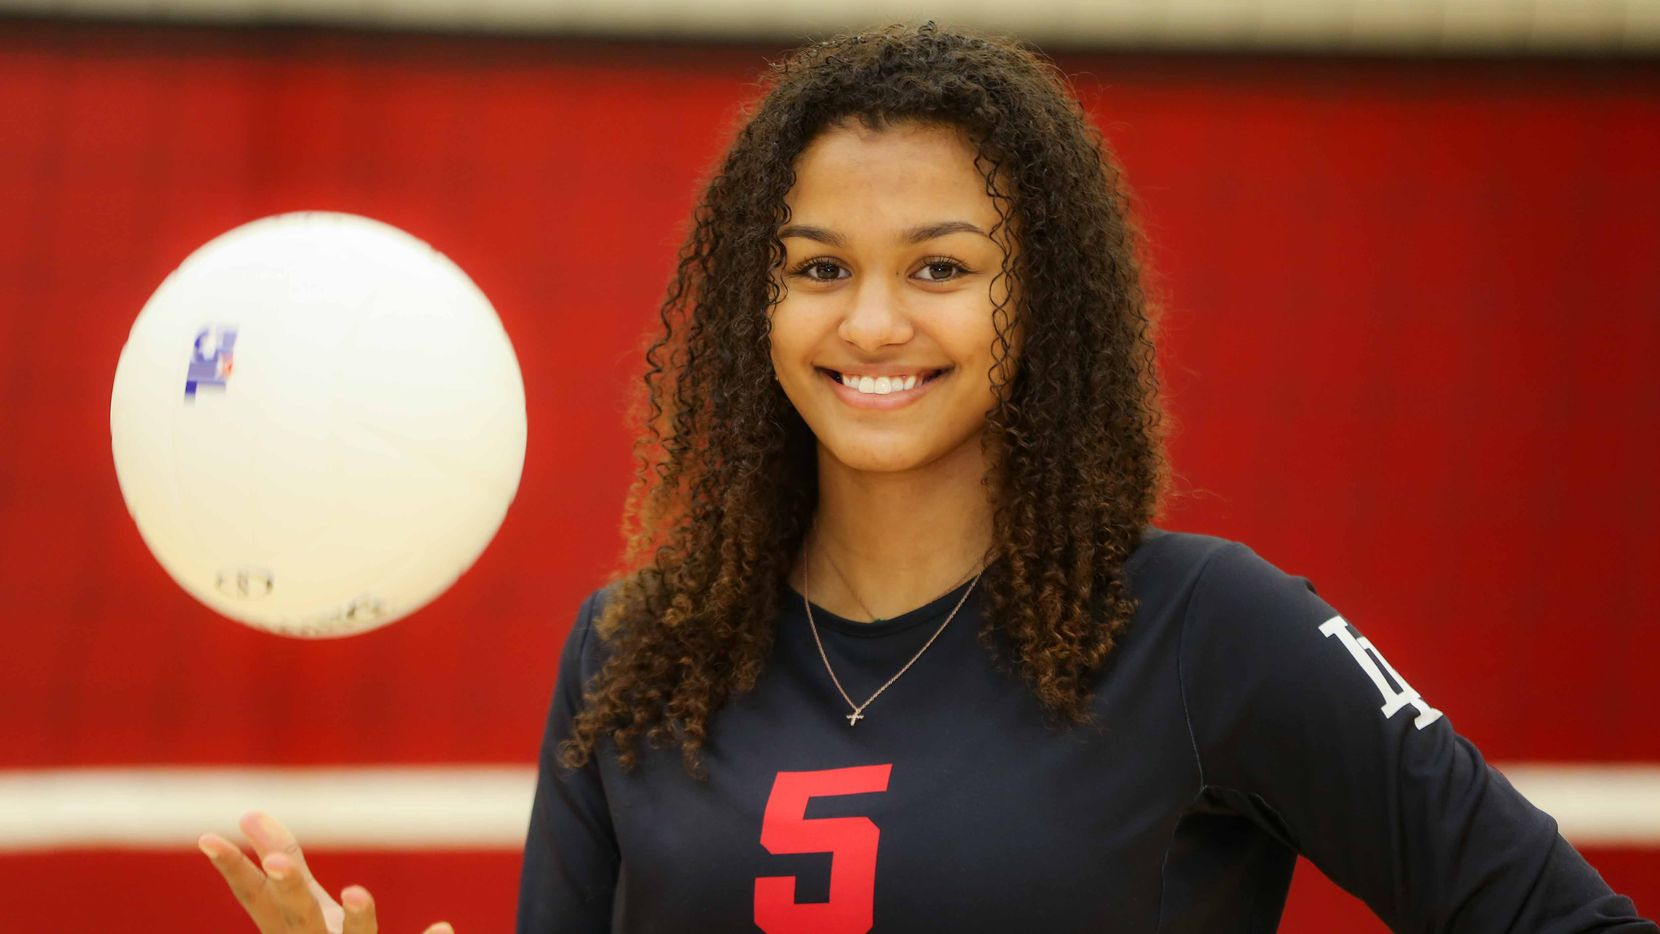 Lovejoy volleyball player Cecily Bramschreiber poses inside the LoveJoy Gym as the Player of the Year in Lucas on Tuesday, December 29, 2020.